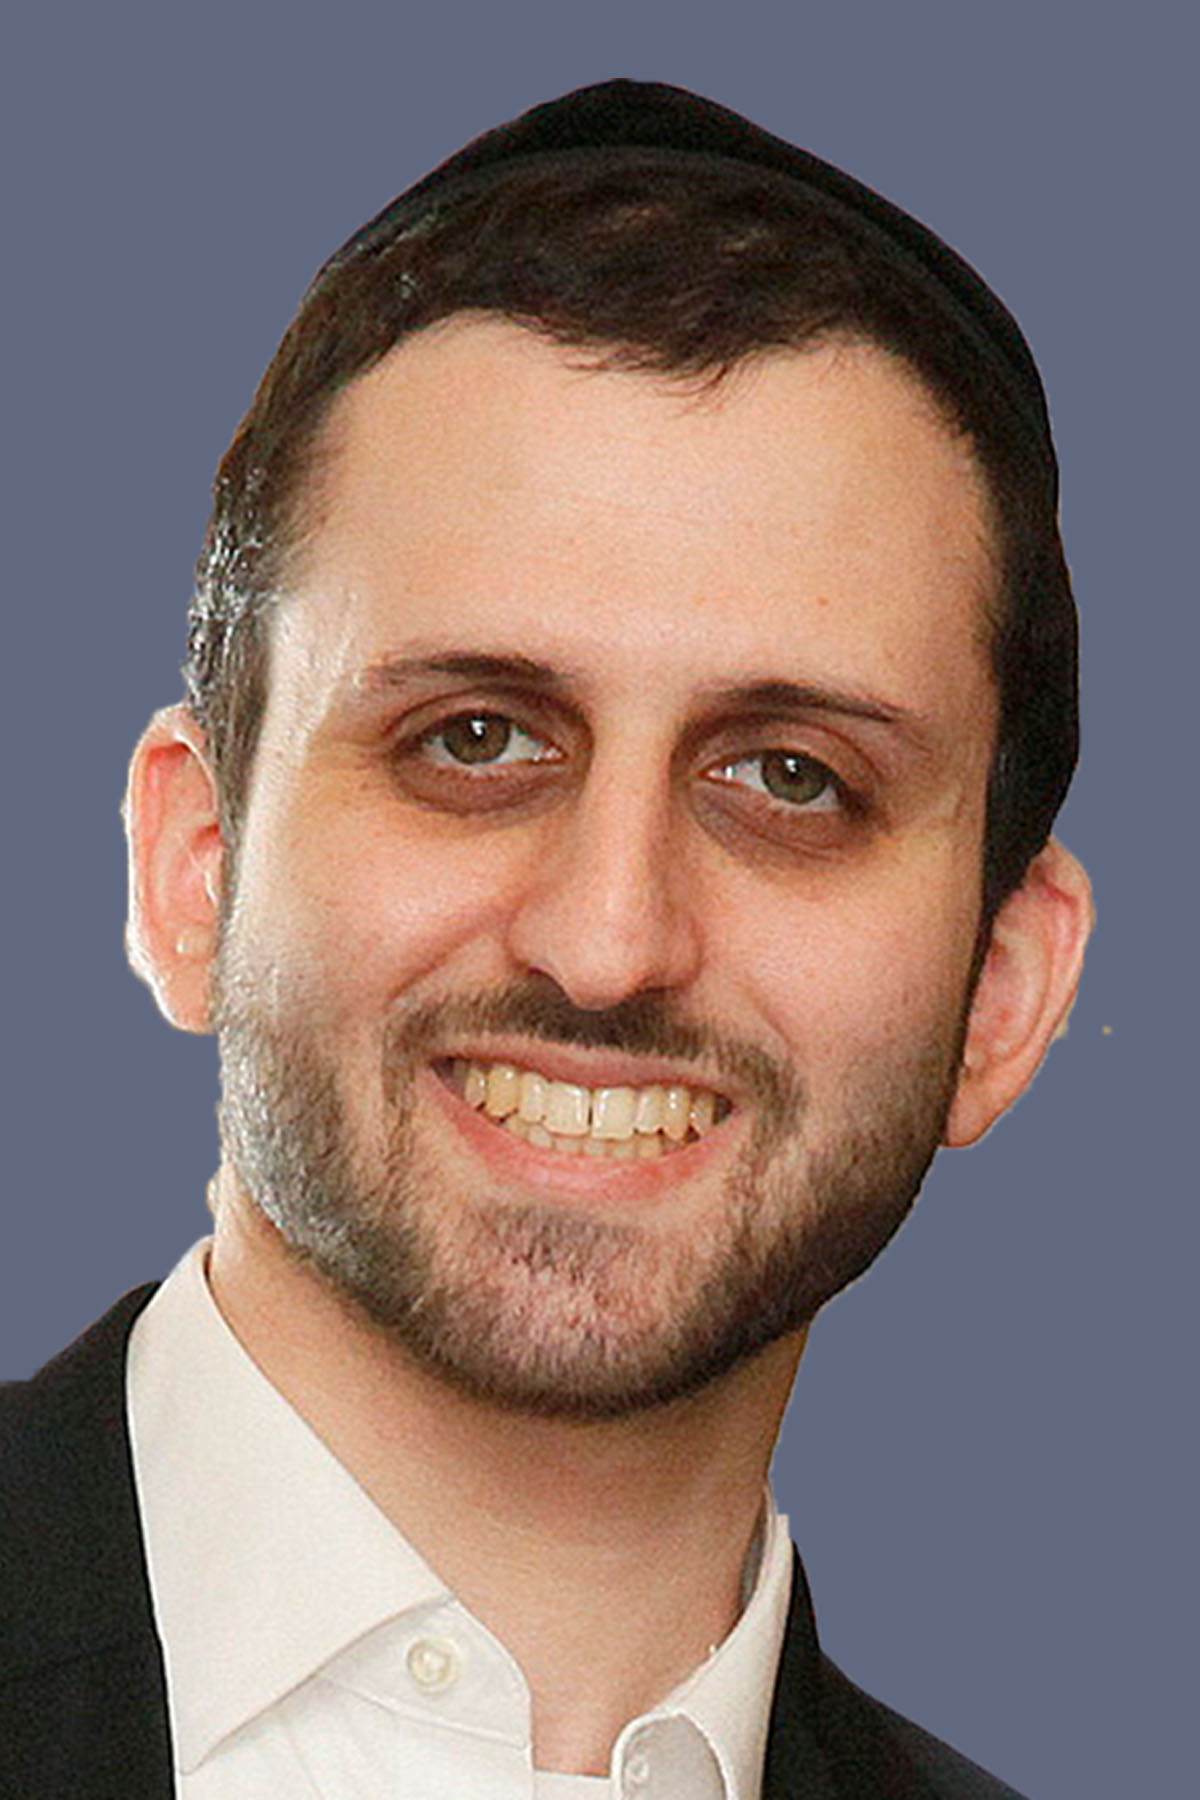 Rabbi Rafi Shenk